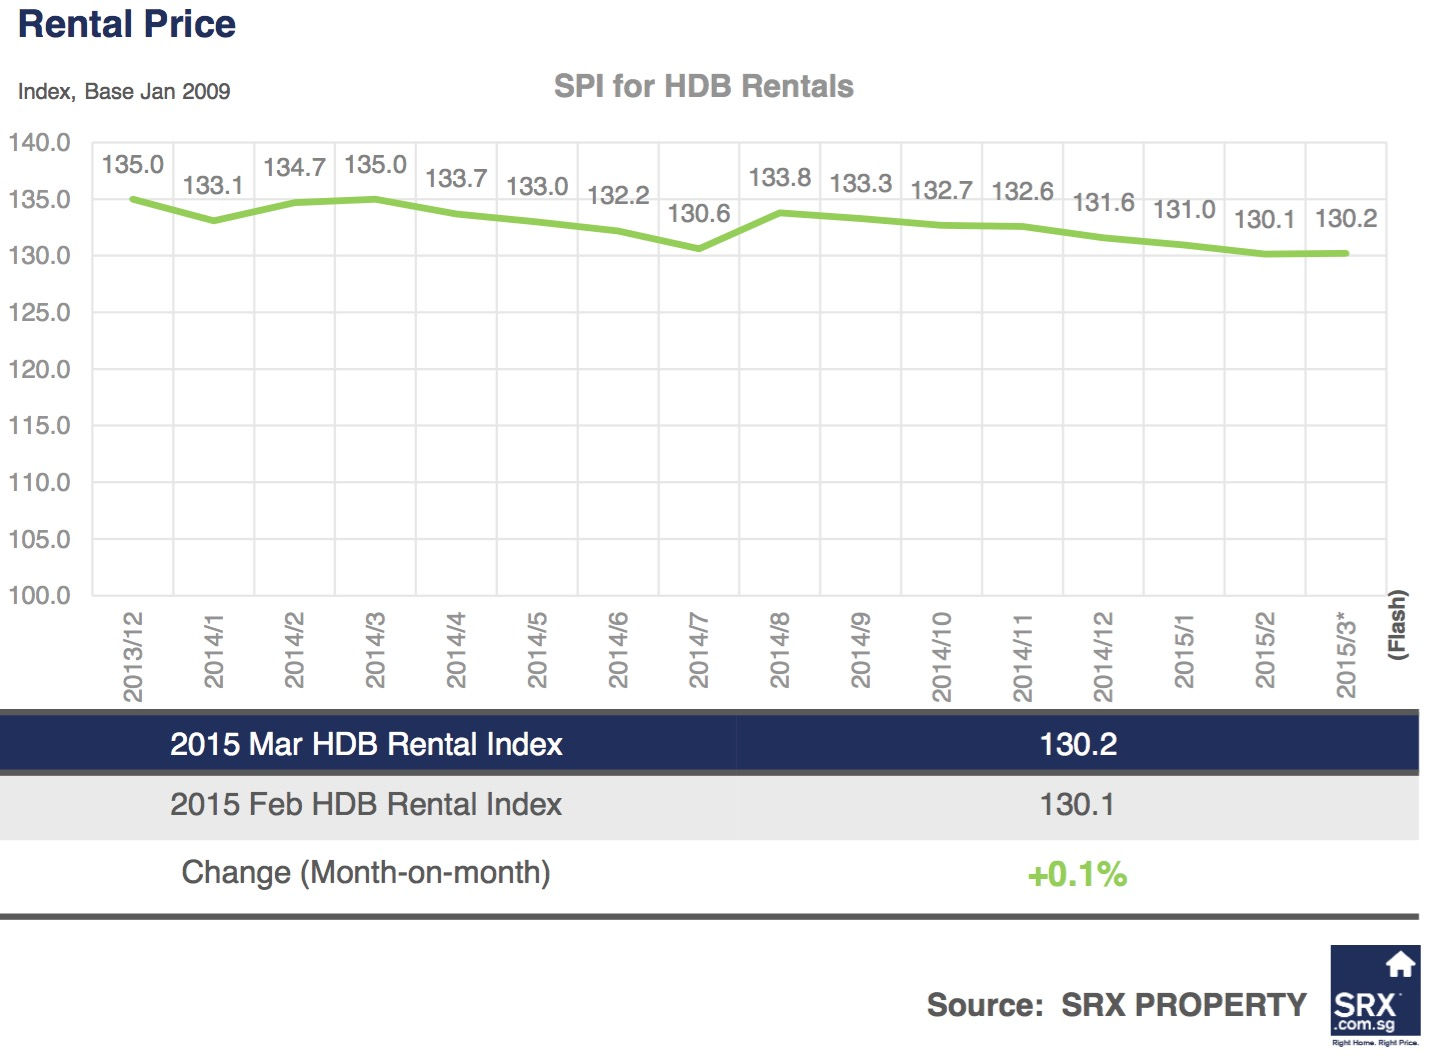 Singagapore Price Index: Non-landed private rents down, volume improved in March  2015 - Rental Price